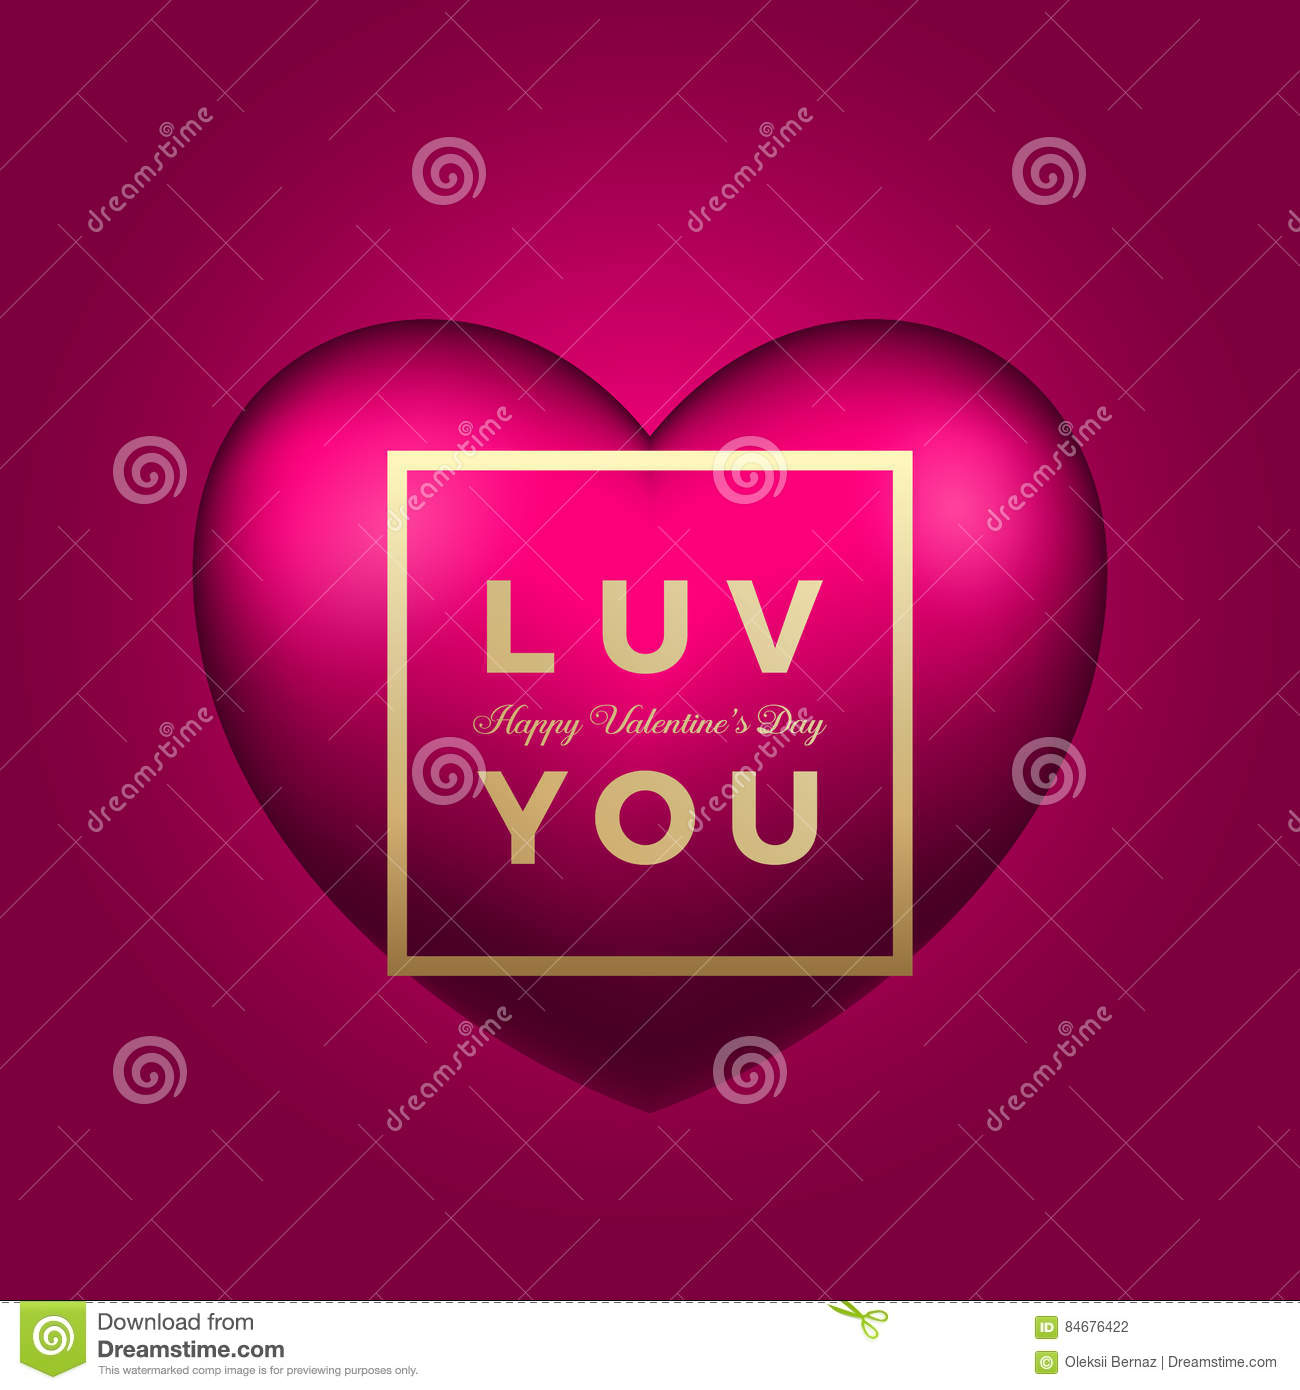 Love you vector heart on pink background valentines day greetings love you vector heart on pink background valentines day greetings golden modern typography in a frame classy card or kristyandbryce Choice Image